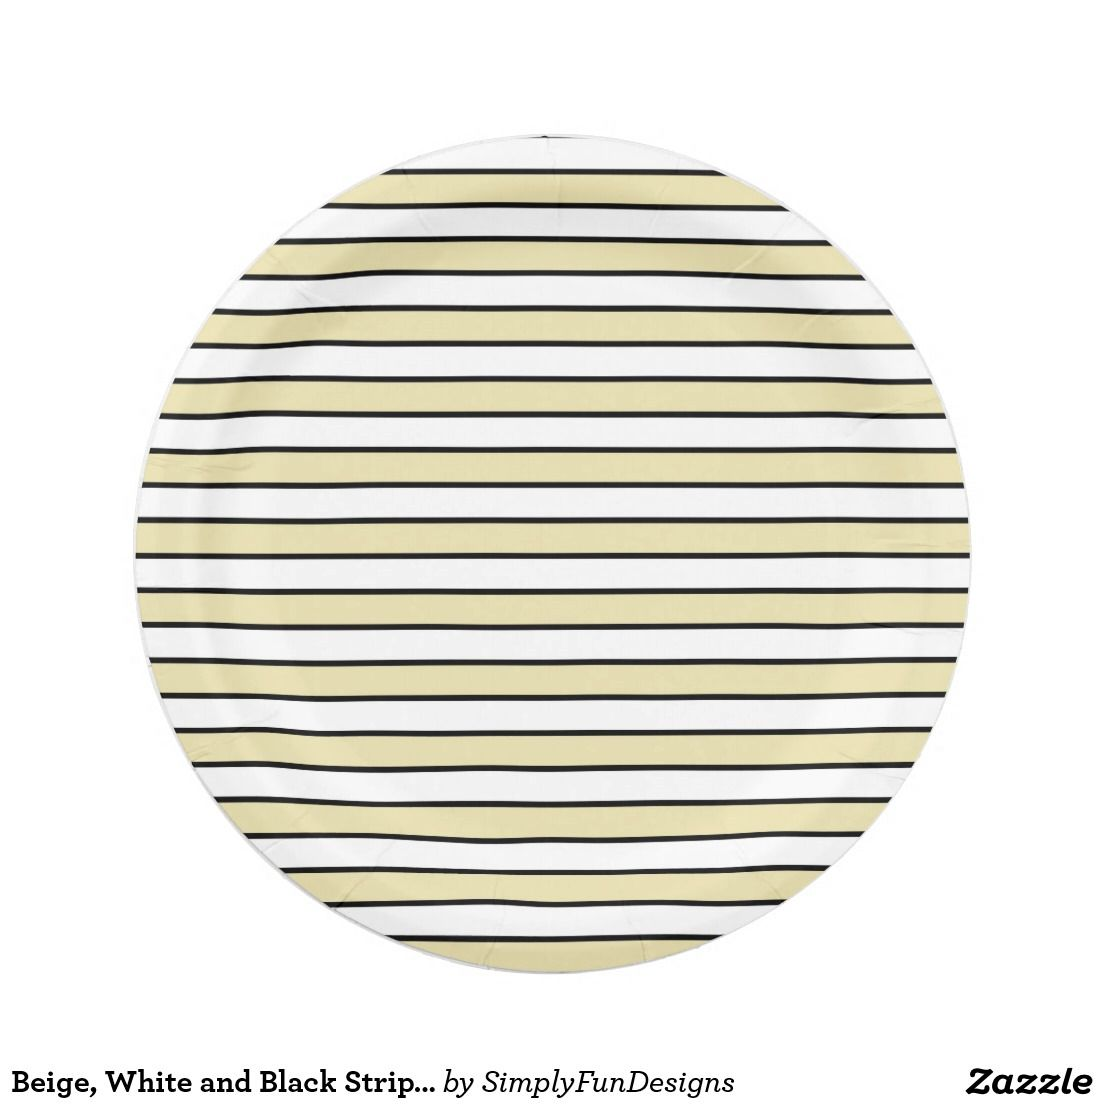 Beige White and Black Stripes Paper Plate  sc 1 st  Pinterest & Beige White and Black Stripes Paper Plate | Zazzle products ...